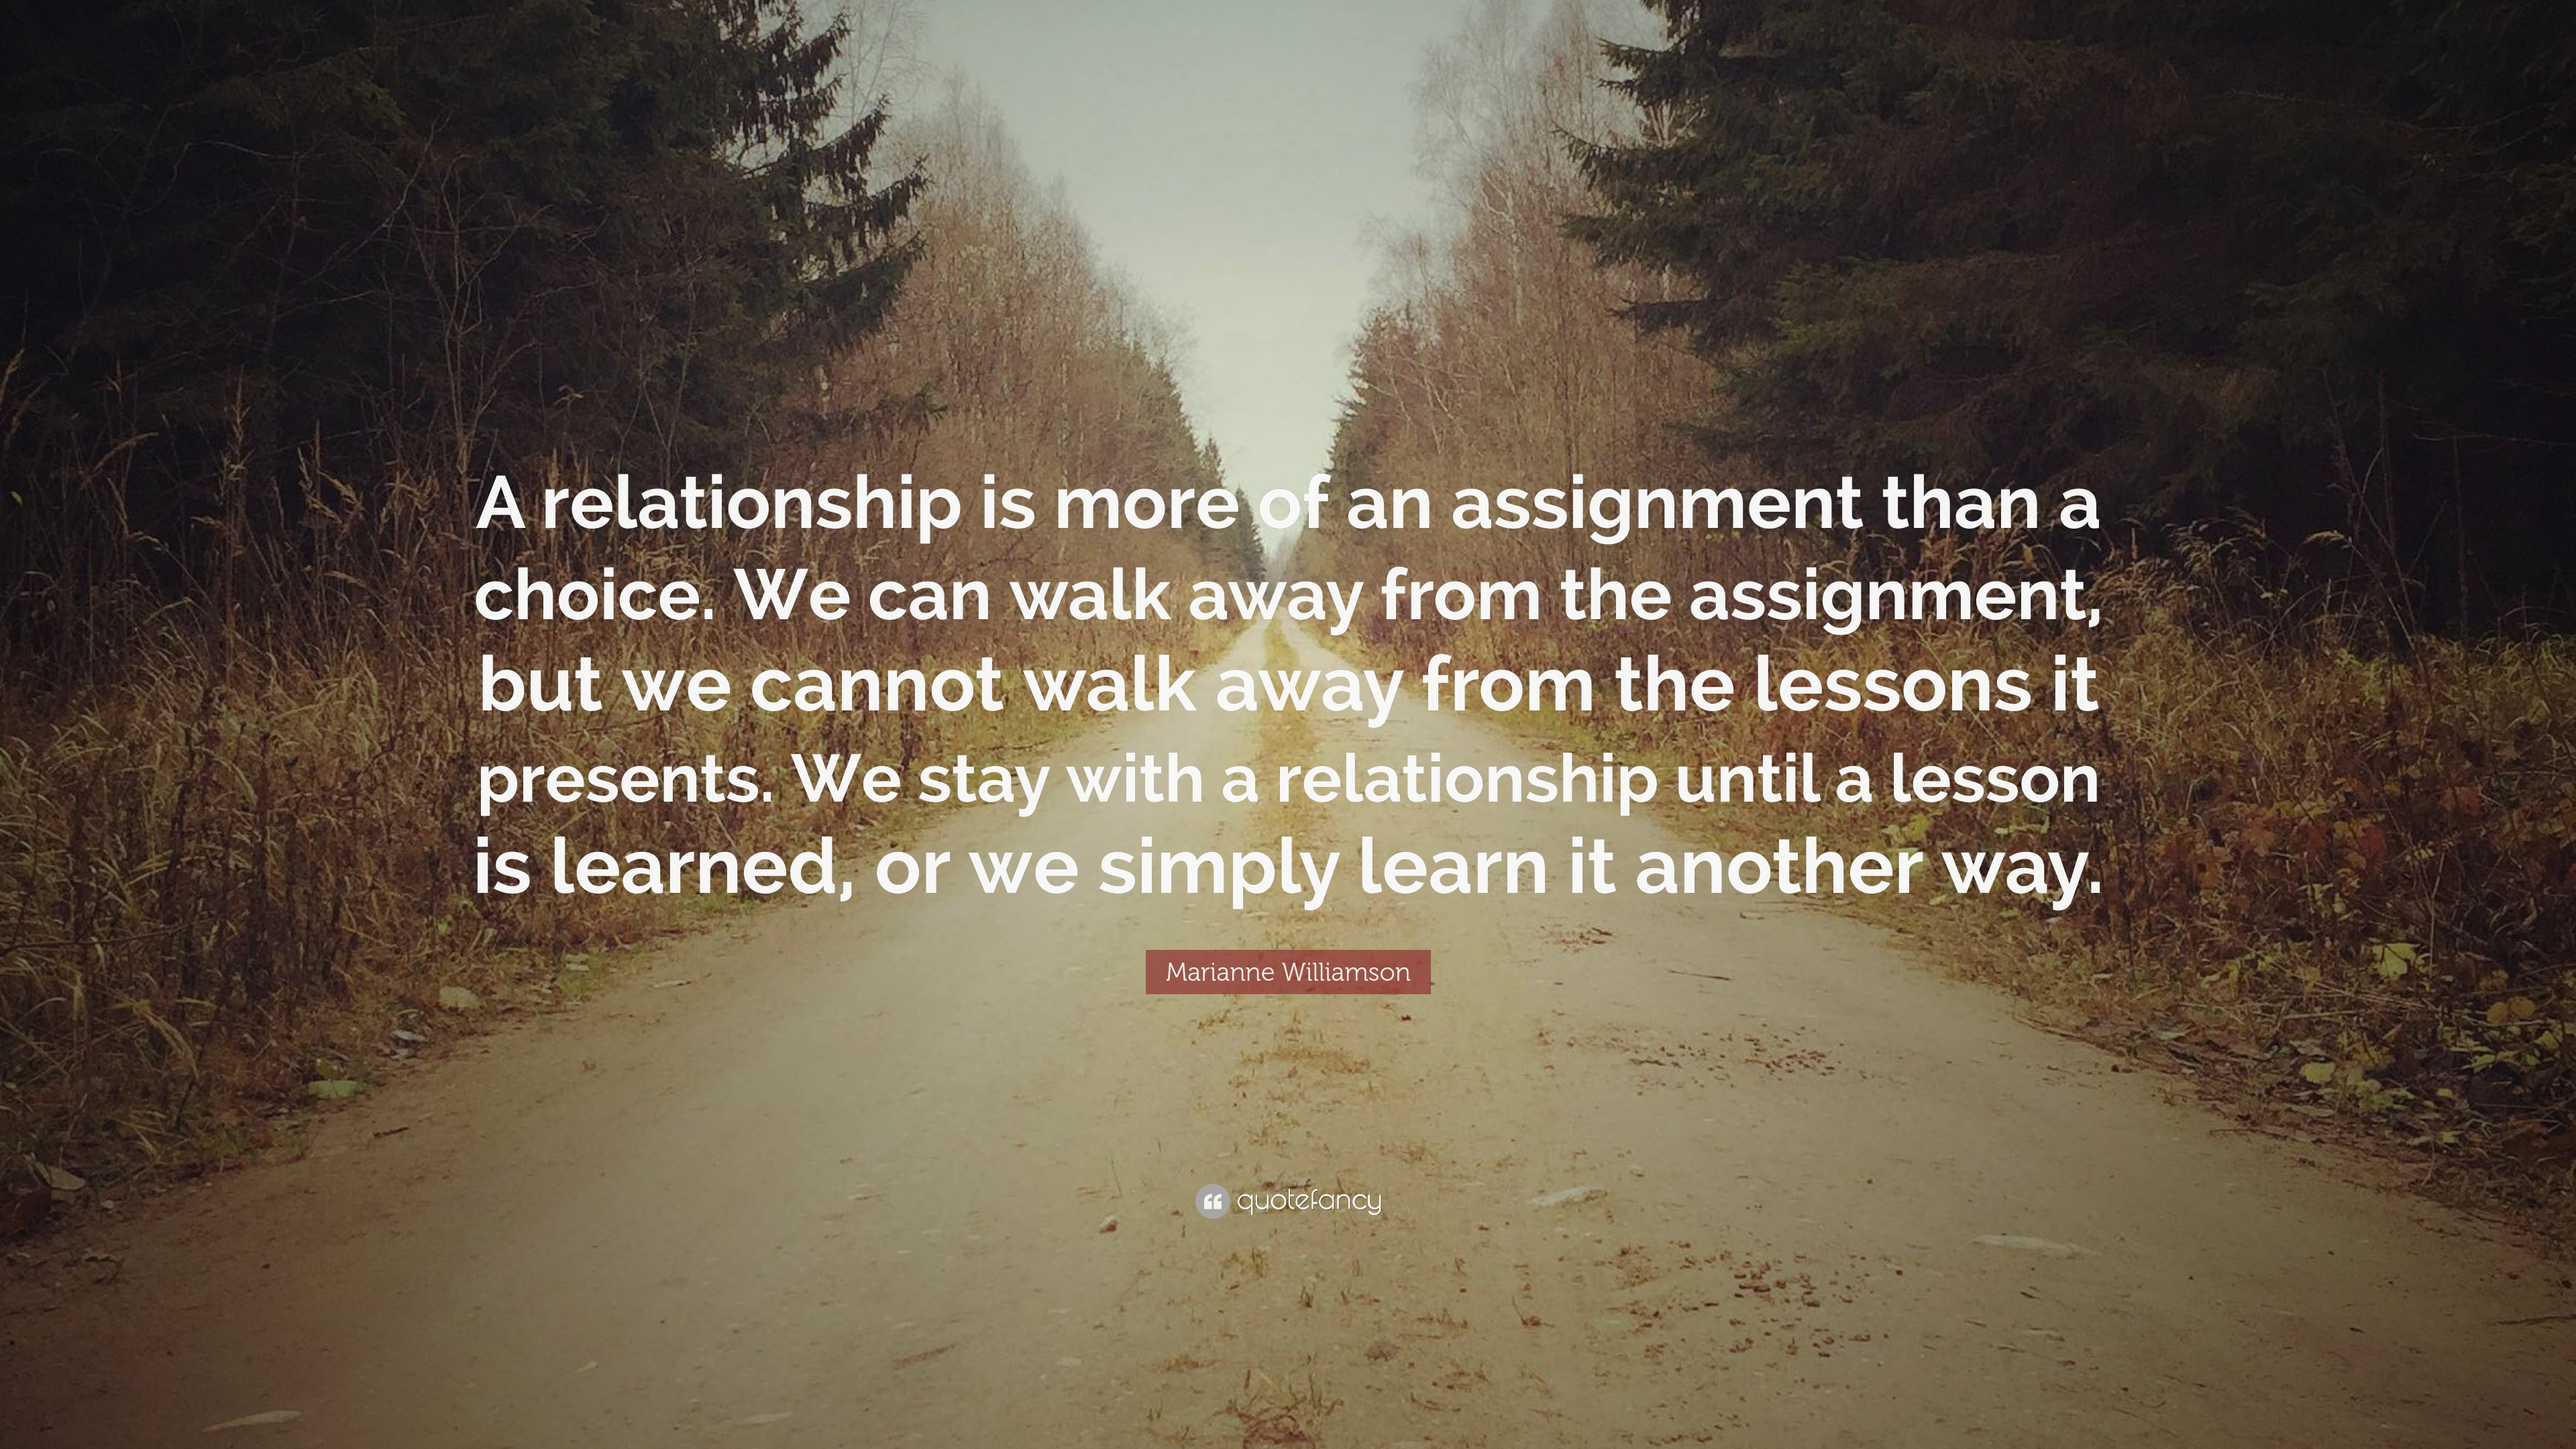 When do you walk away from a relationship.